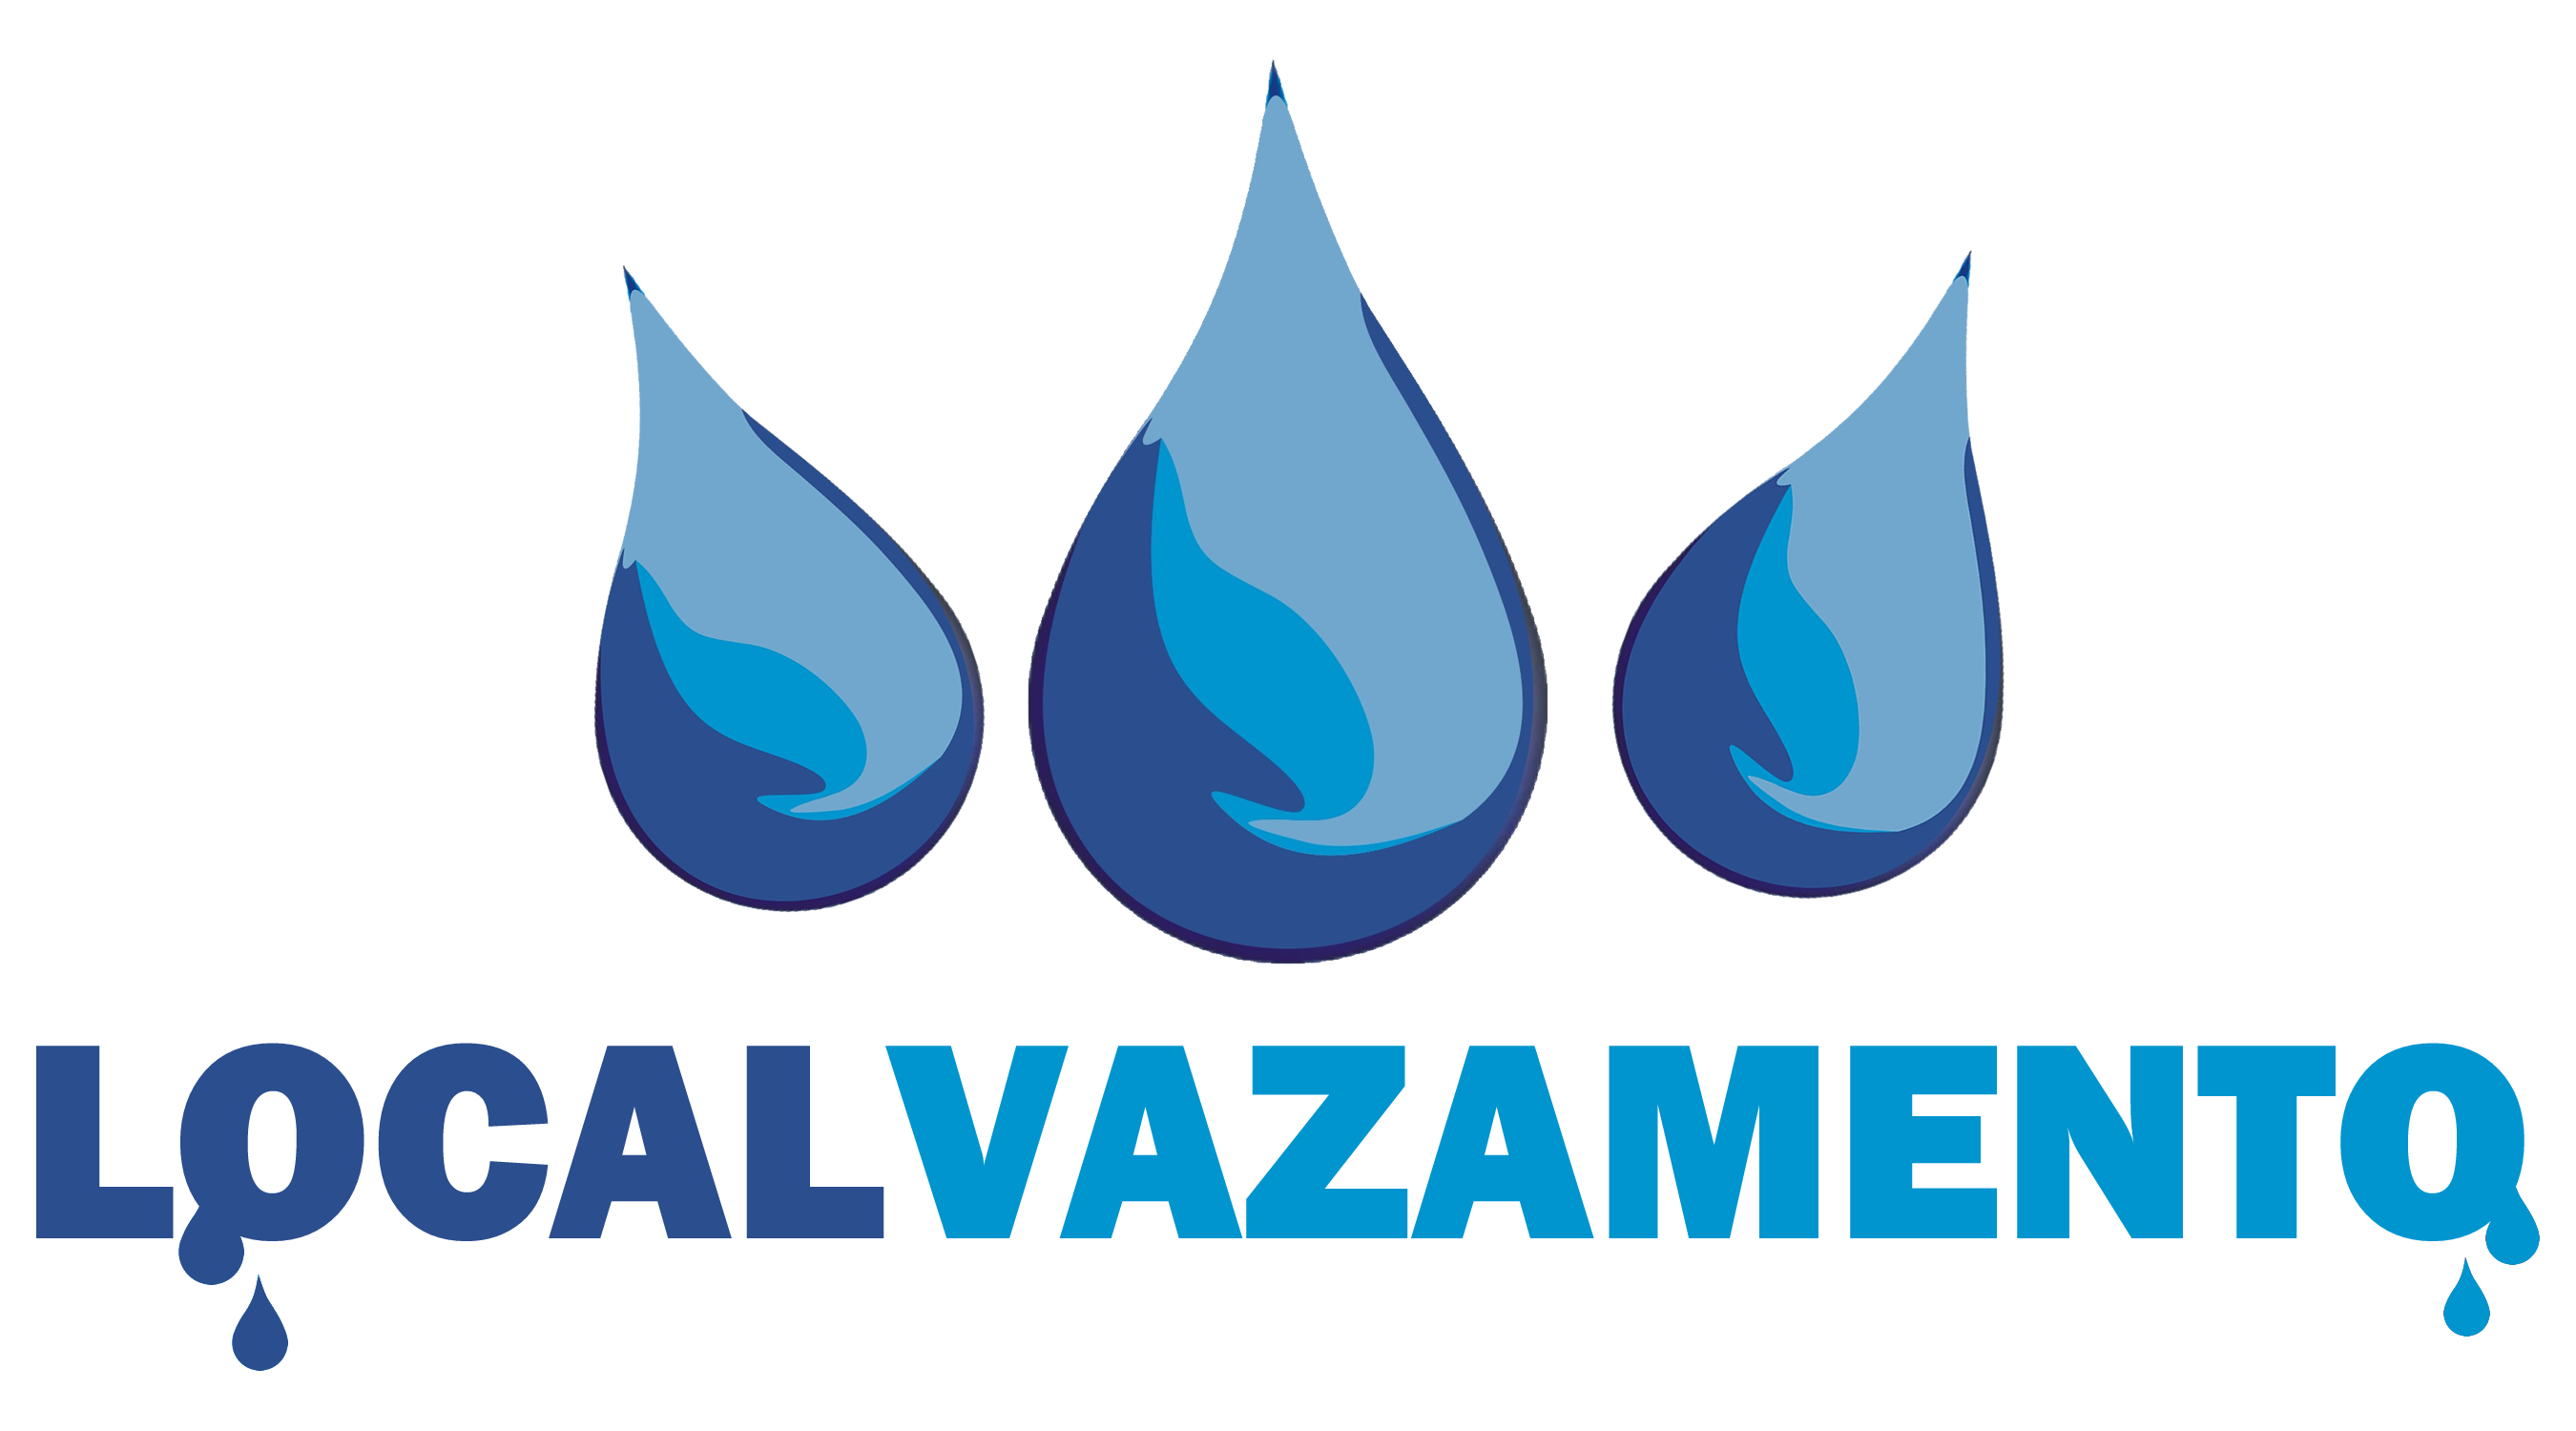 local-vazamento-logotipo-full